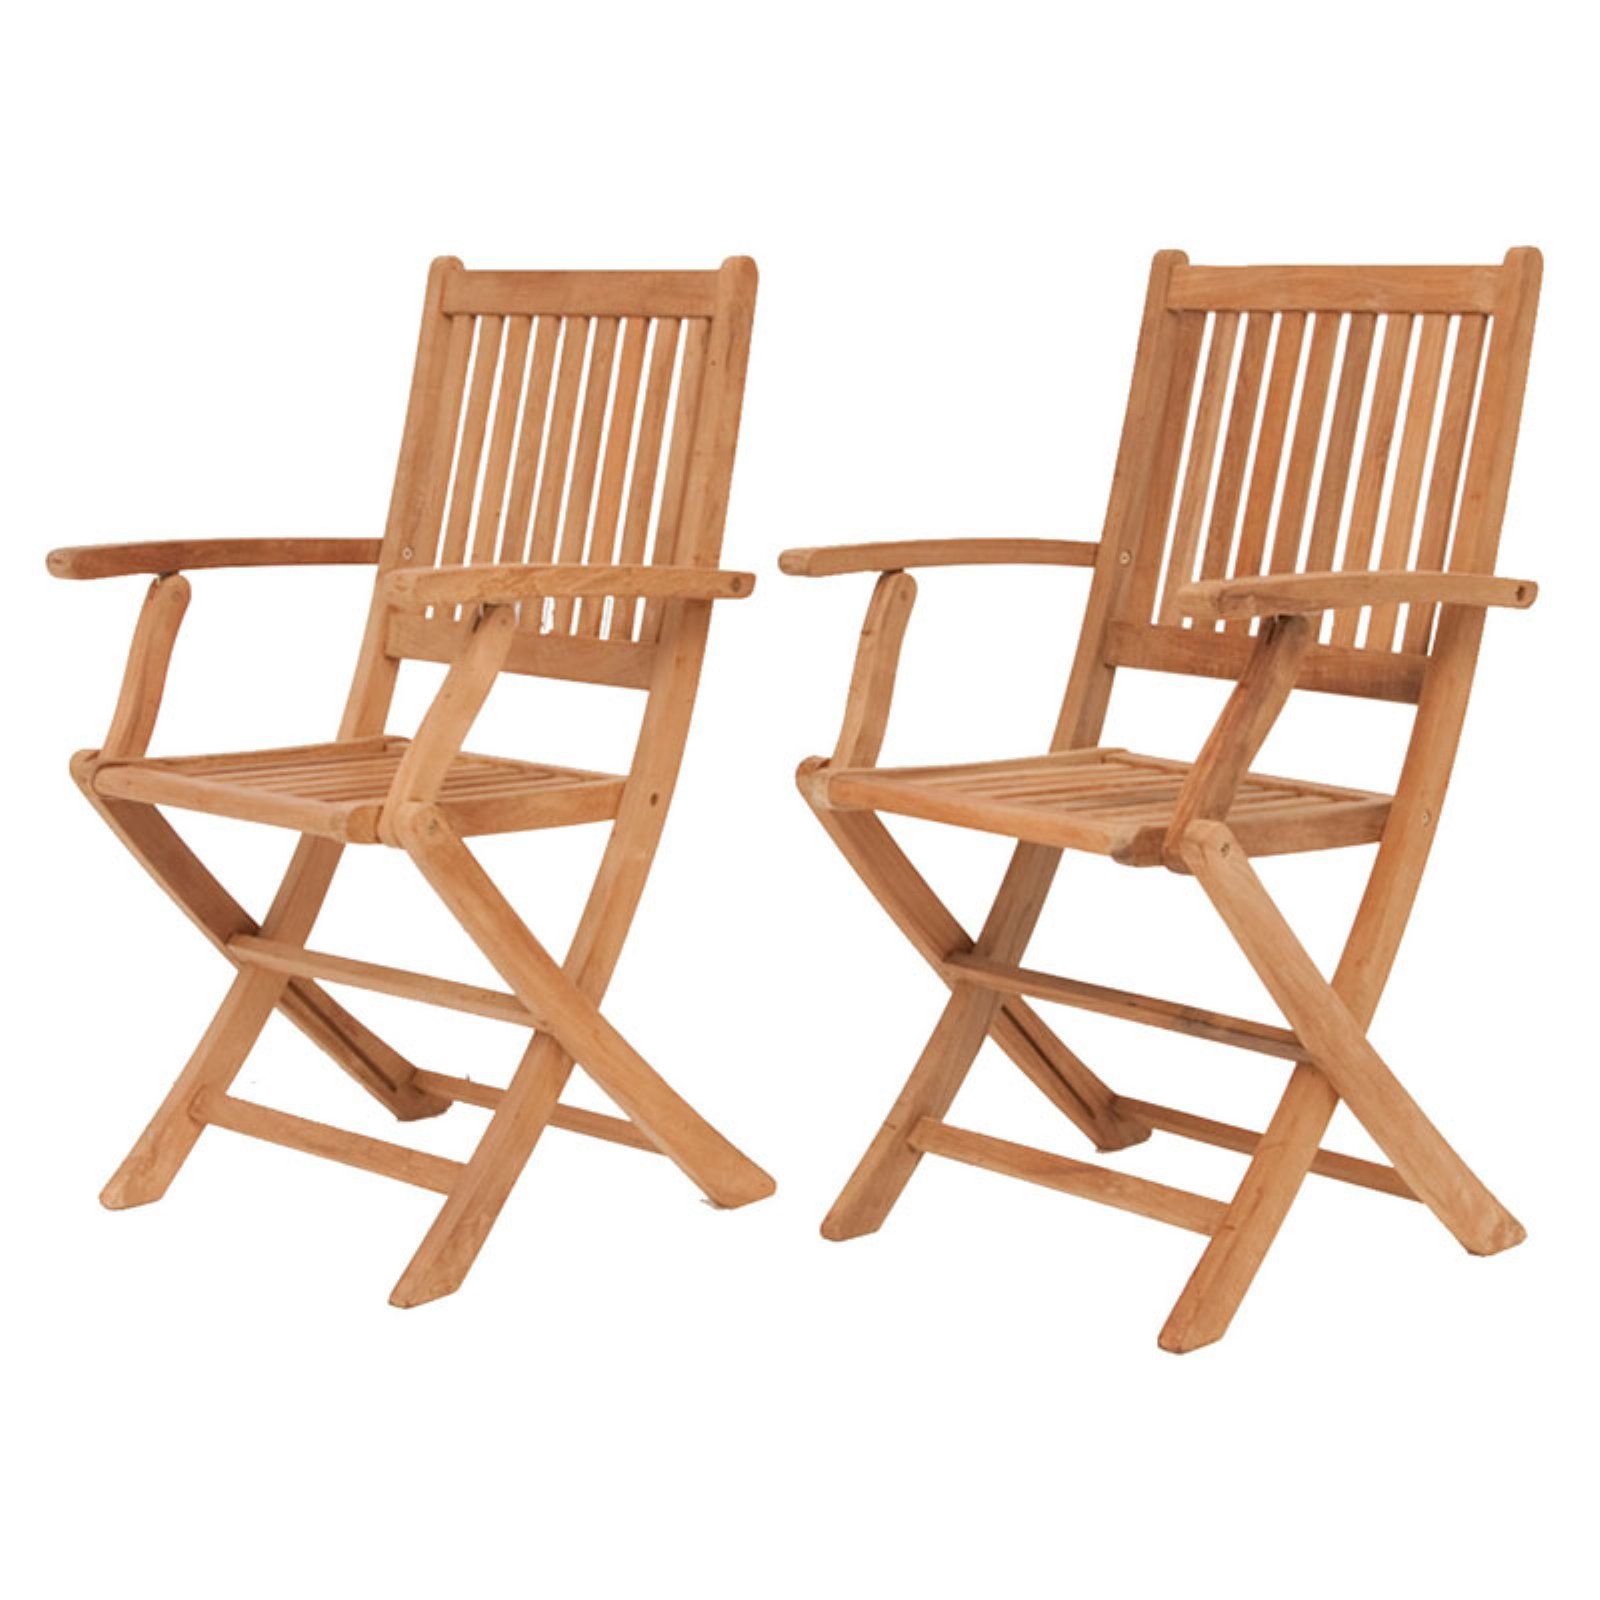 Amazonia Sandford Teak Wood Outdoor Folding Armchairs, Set of 2, Light Brown